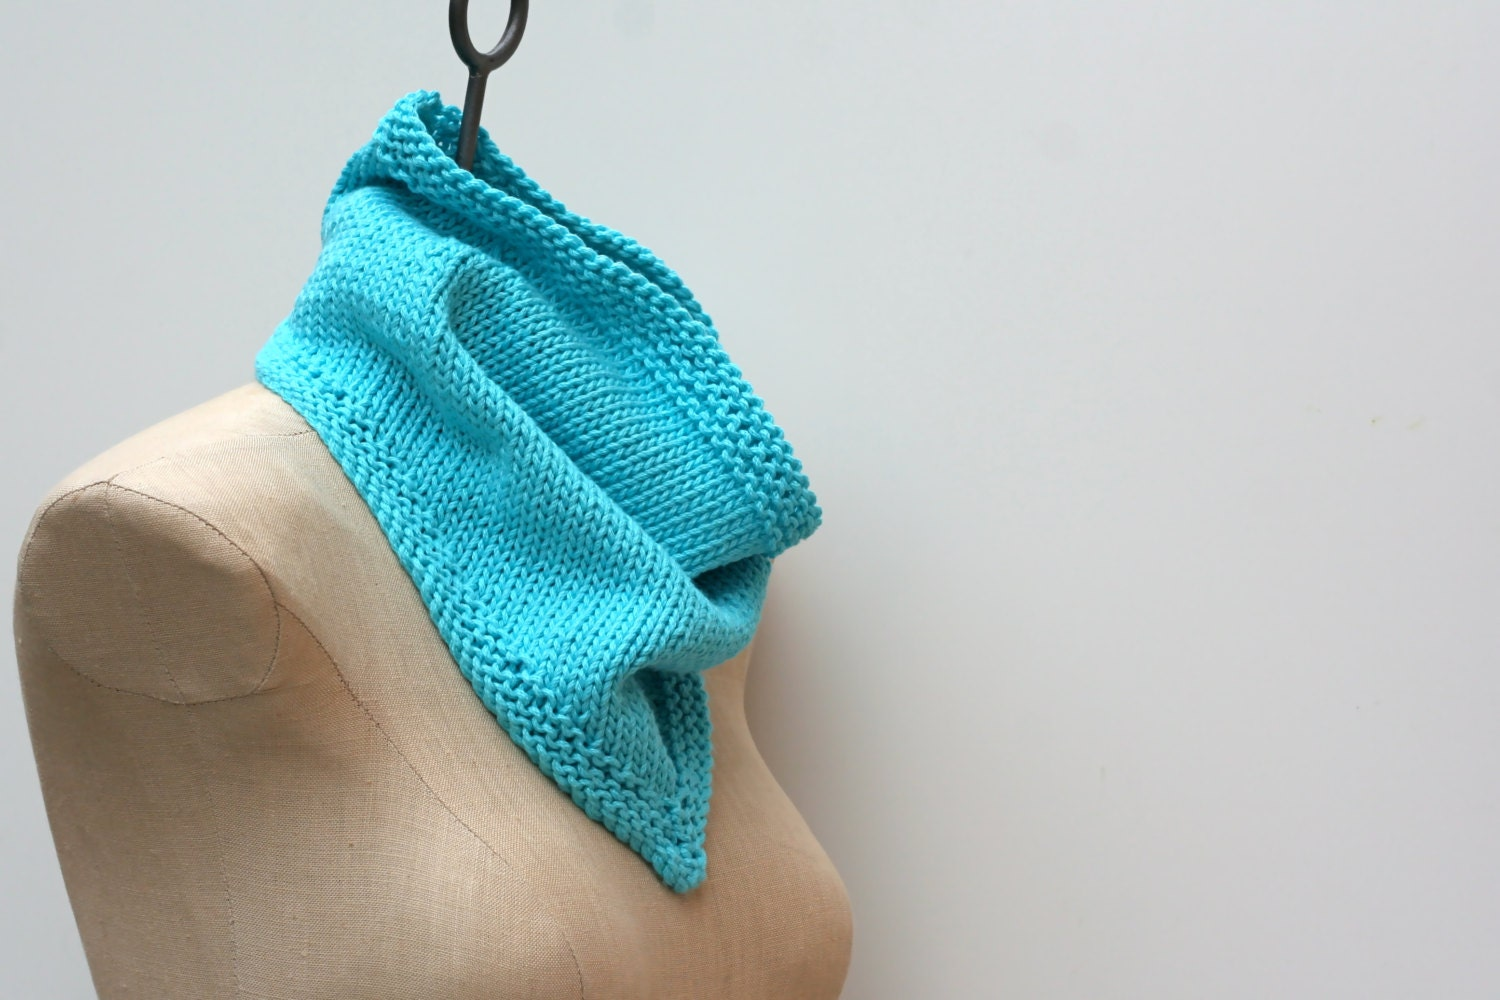 Made to Order: Hand Knitted Bandana Cowl Infinity Scarf in Brilliant Aqua Blue Cotton Blend Yarn - AmyLaRoux